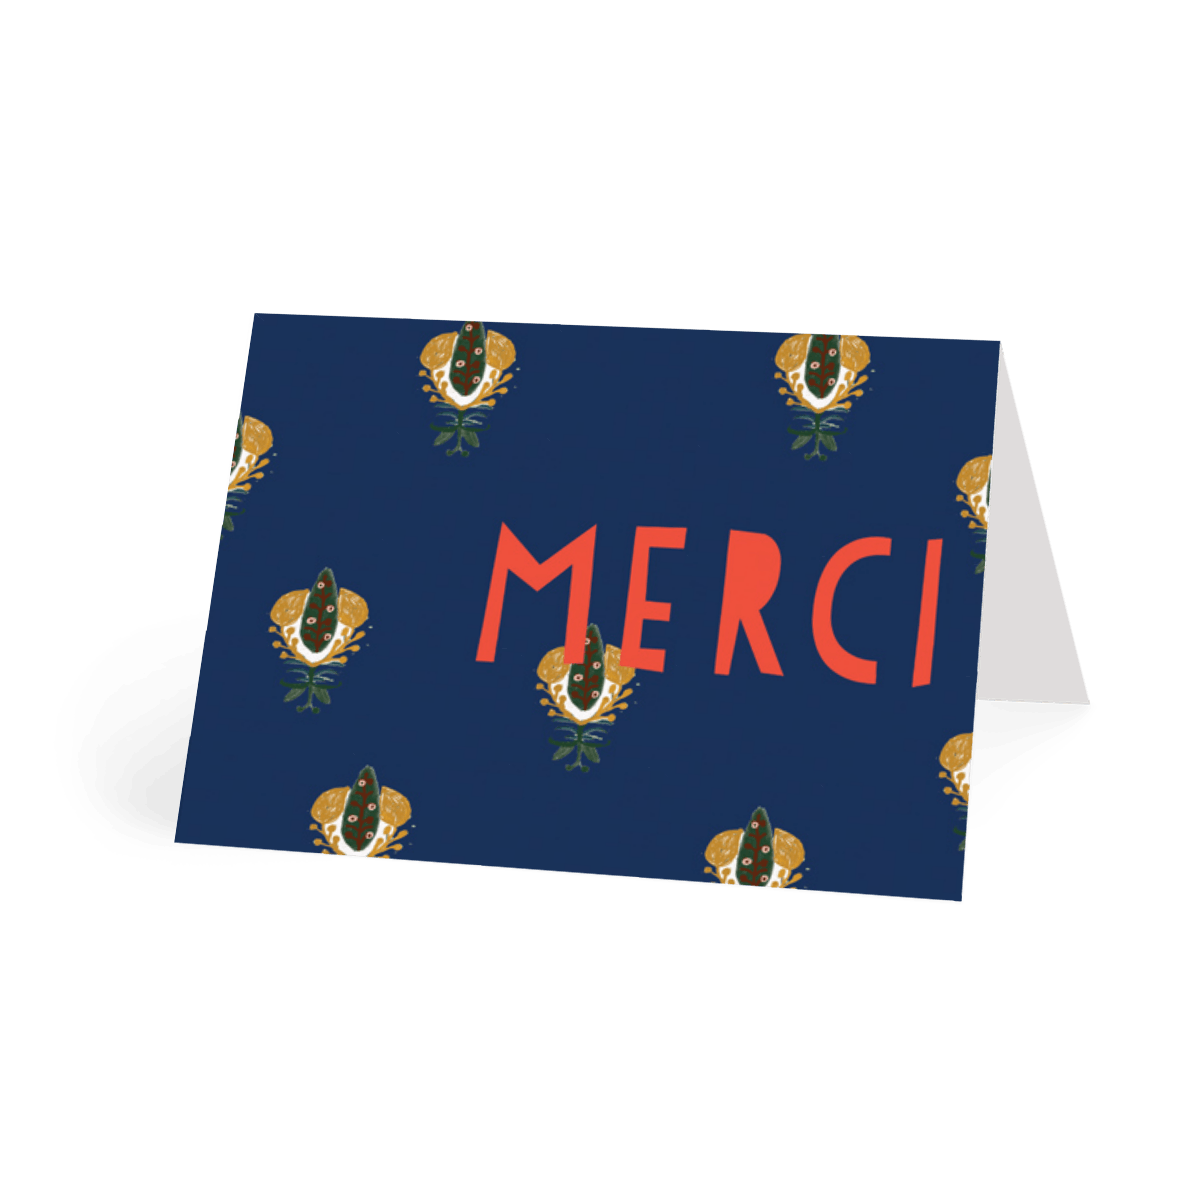 Https%3a%2f%2fwww.papier.com%2fproduct image%2f29285%2f14%2fcalico navy merci 7356 avant 1508336519.png?ixlib=rb 1.1